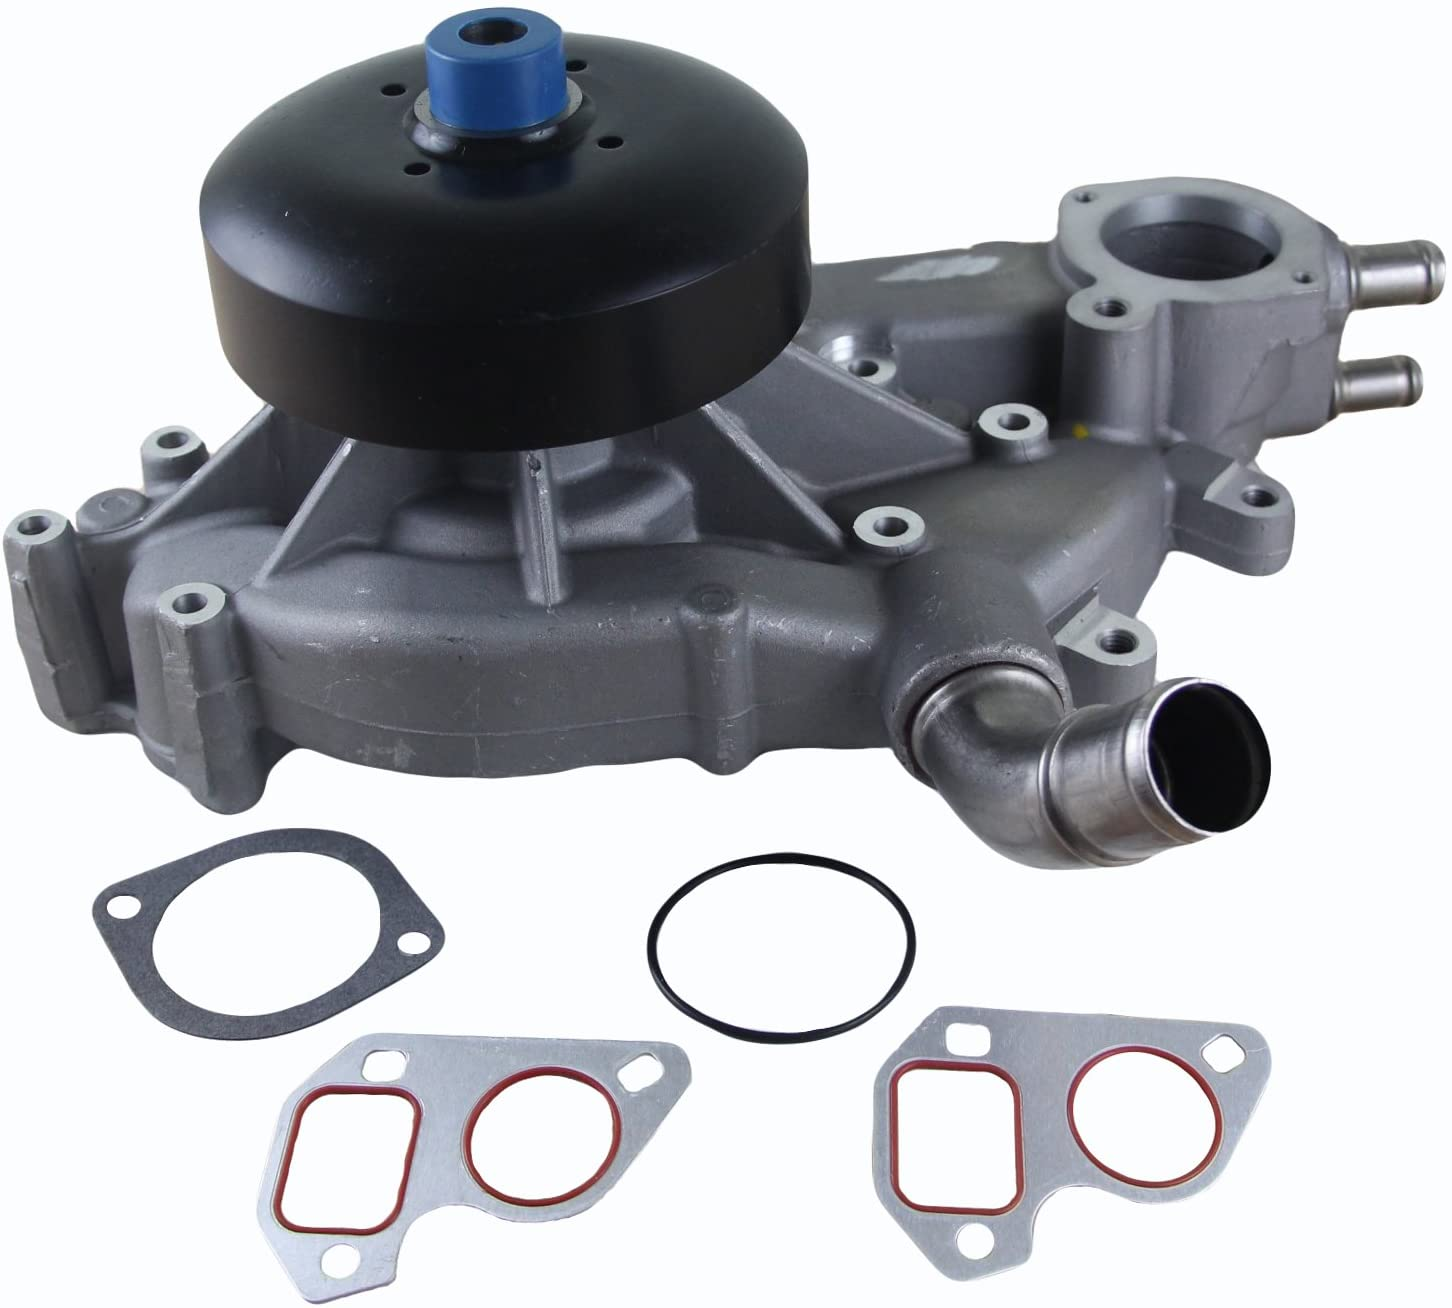 Rareelectrical NEW WATER PUMP COMPATIBLE WITH CHEVROLET SILVERADO 1500 Z71 WT LT LS 4.8 5.3 6.0 19195104